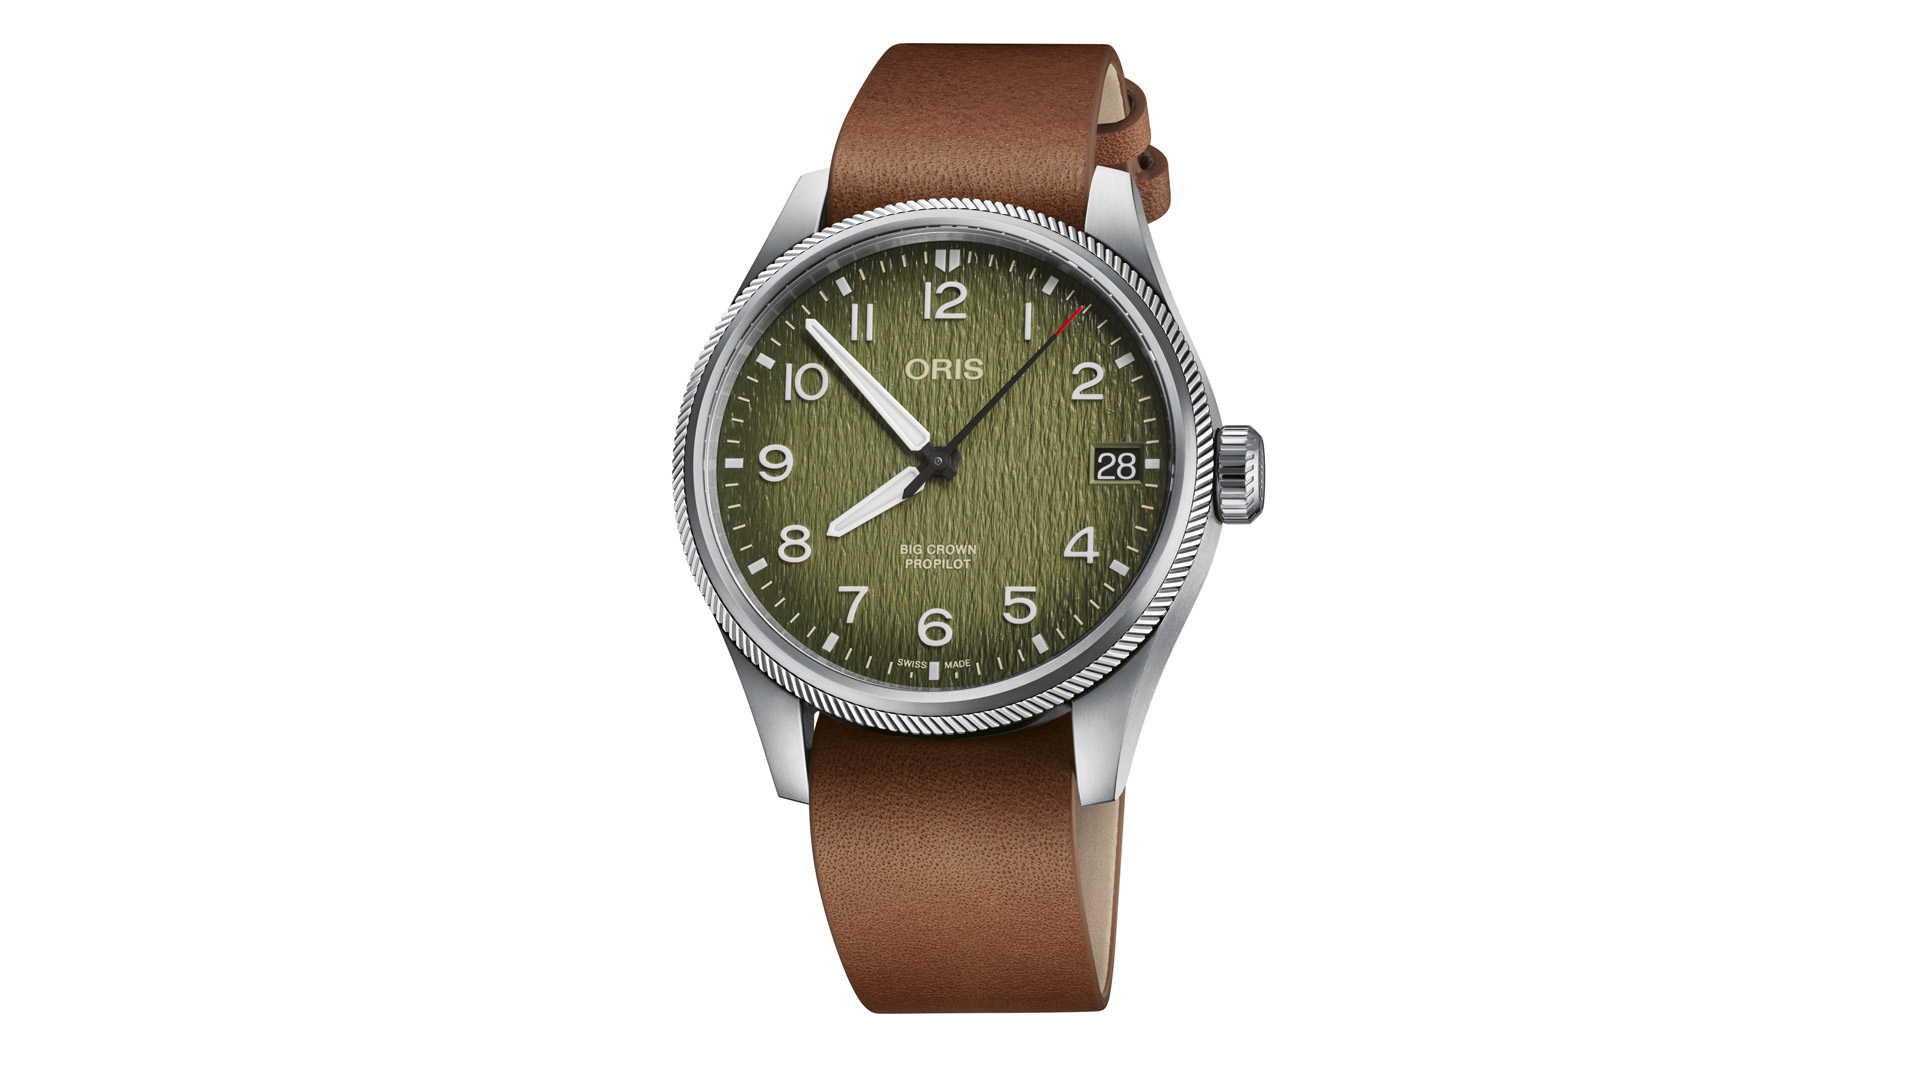 Oris celebrates OAR's mission to provide medical support to remote areas of Botswana